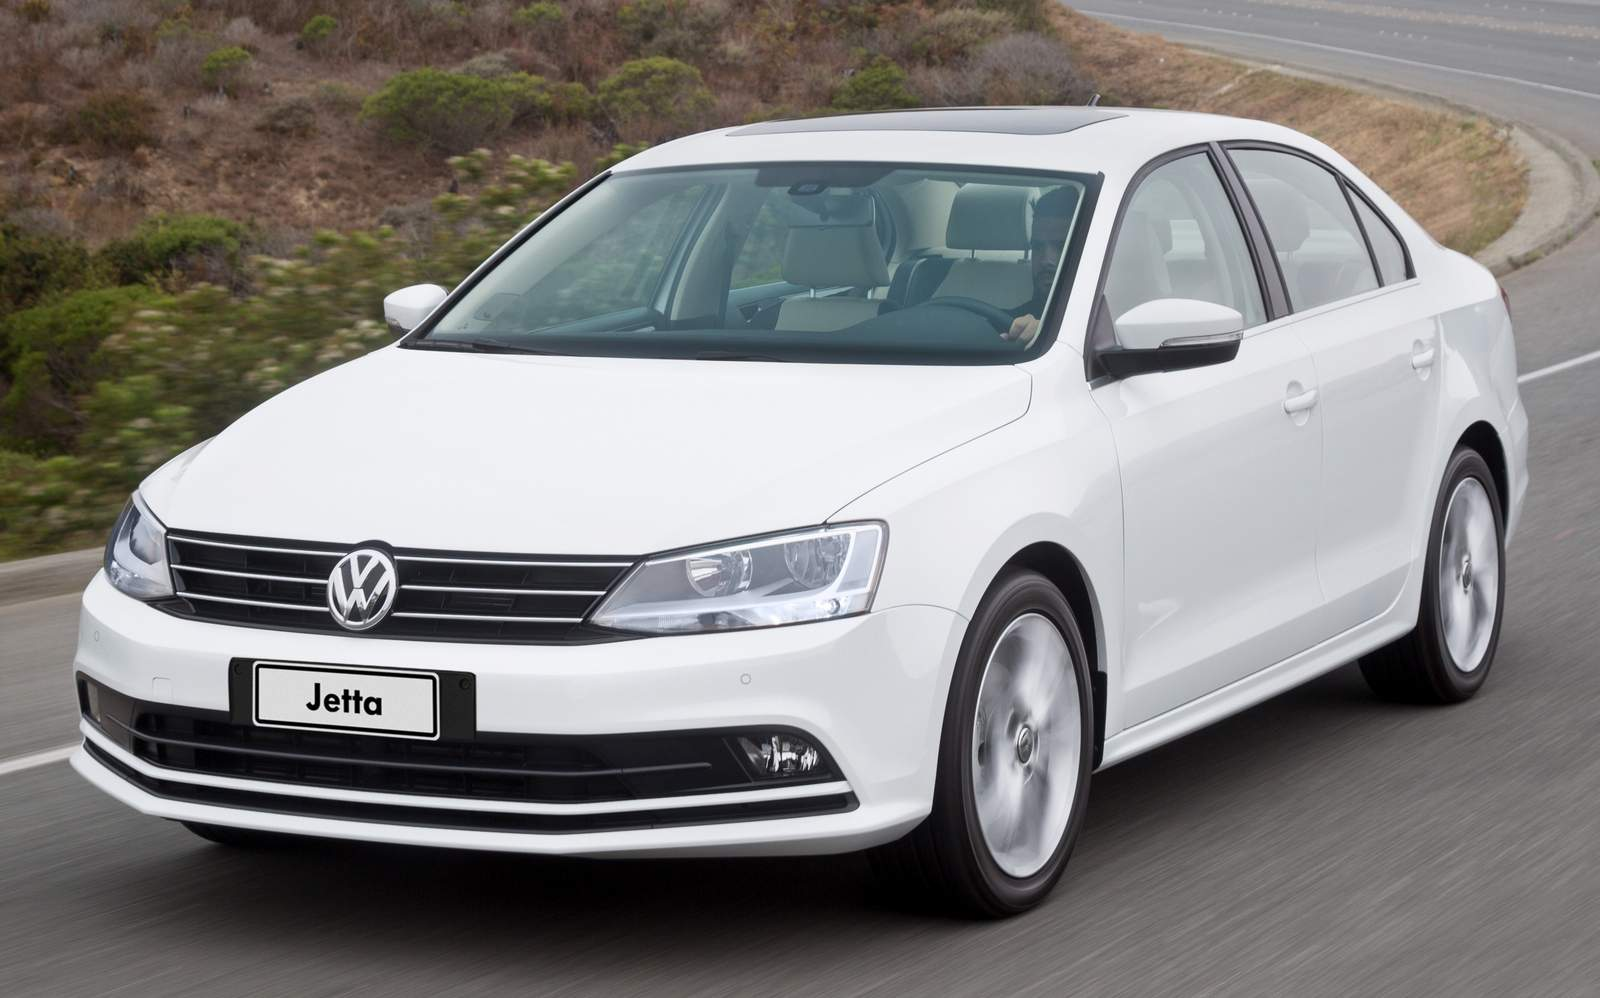 rumor fim de linha para o vw jetta 2 0 tsi no brasil car blog br. Black Bedroom Furniture Sets. Home Design Ideas